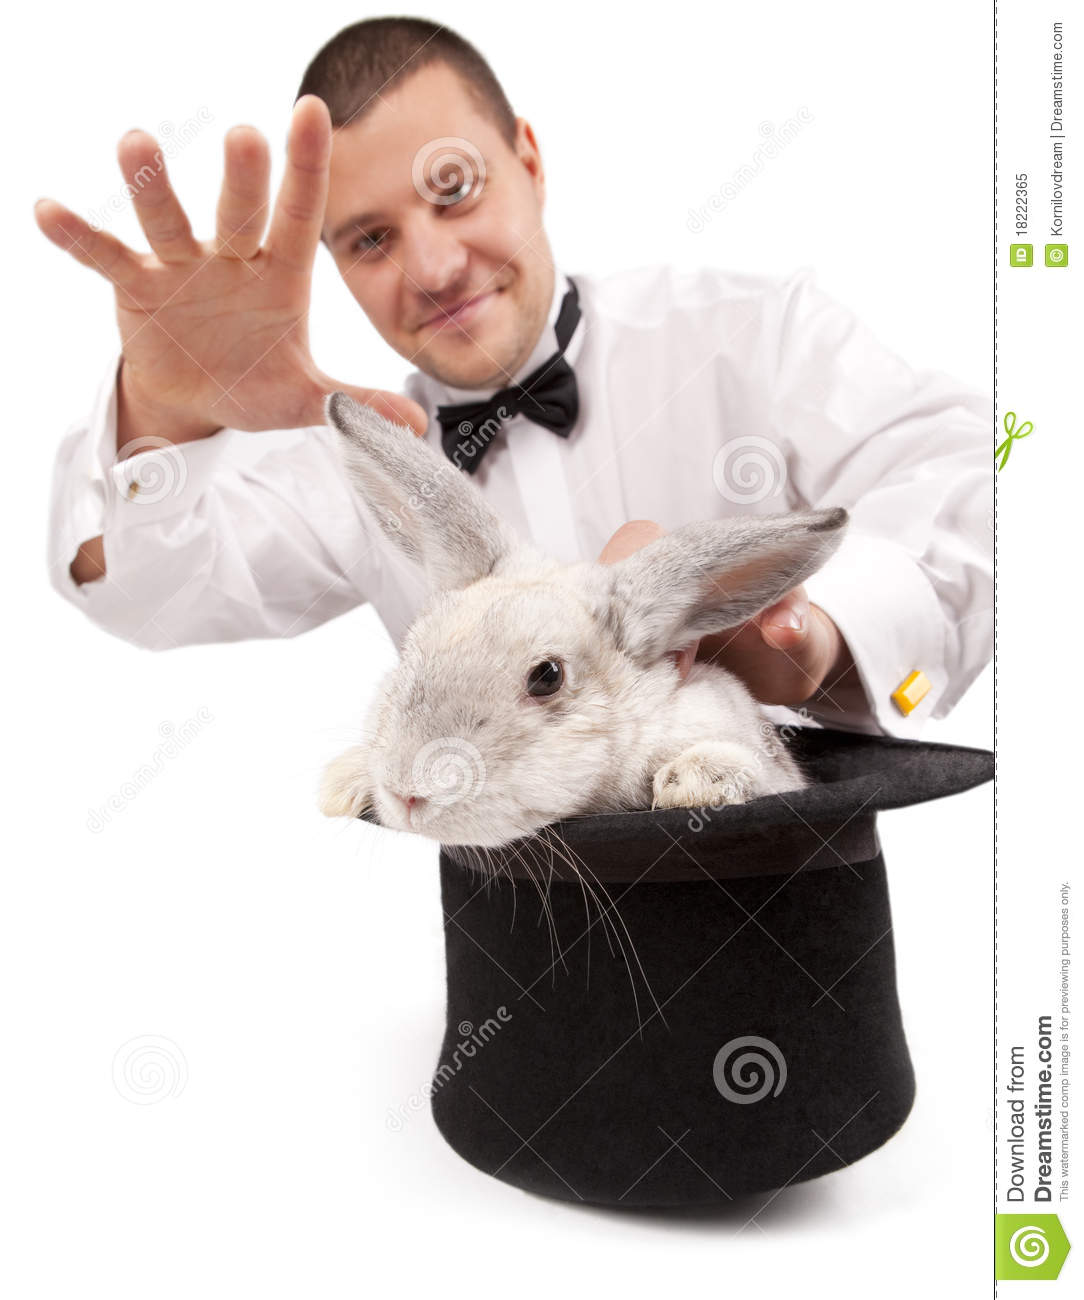 Magician Conjuring With A Rabbit Stock Image - Image: 18222365